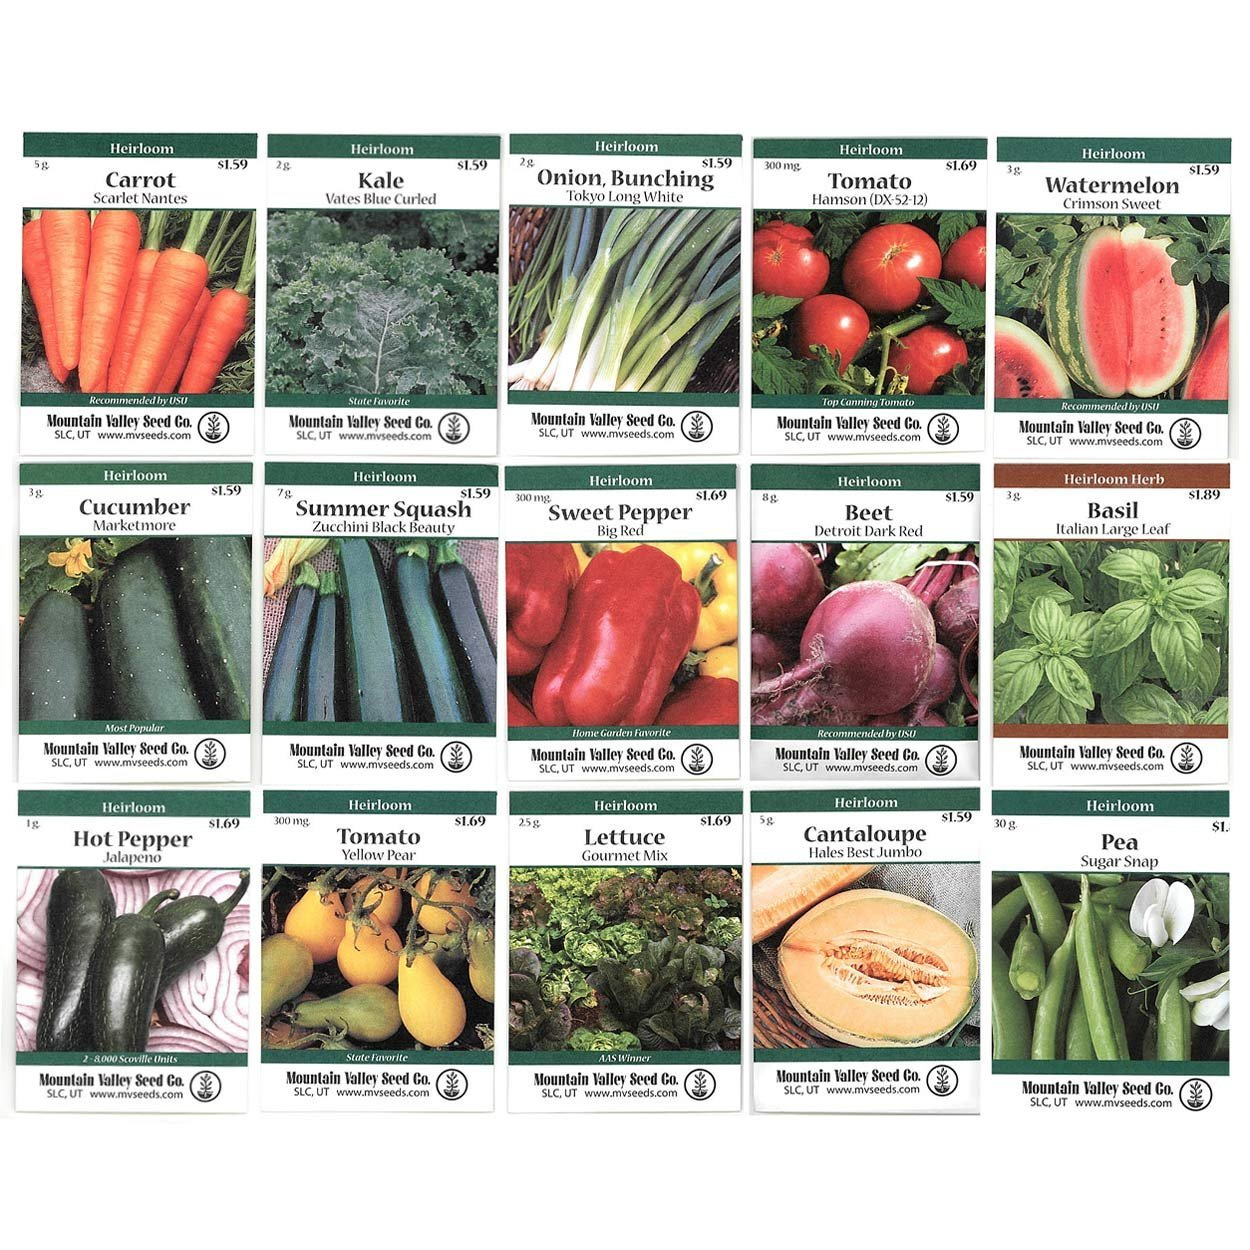 Heirloom Vegetable Garden Seed Collection ��� Assortment of 15 Non-GMO, Easy Grow, Gardening Seeds: Carrot, Onion, Tomato, Pea, More���